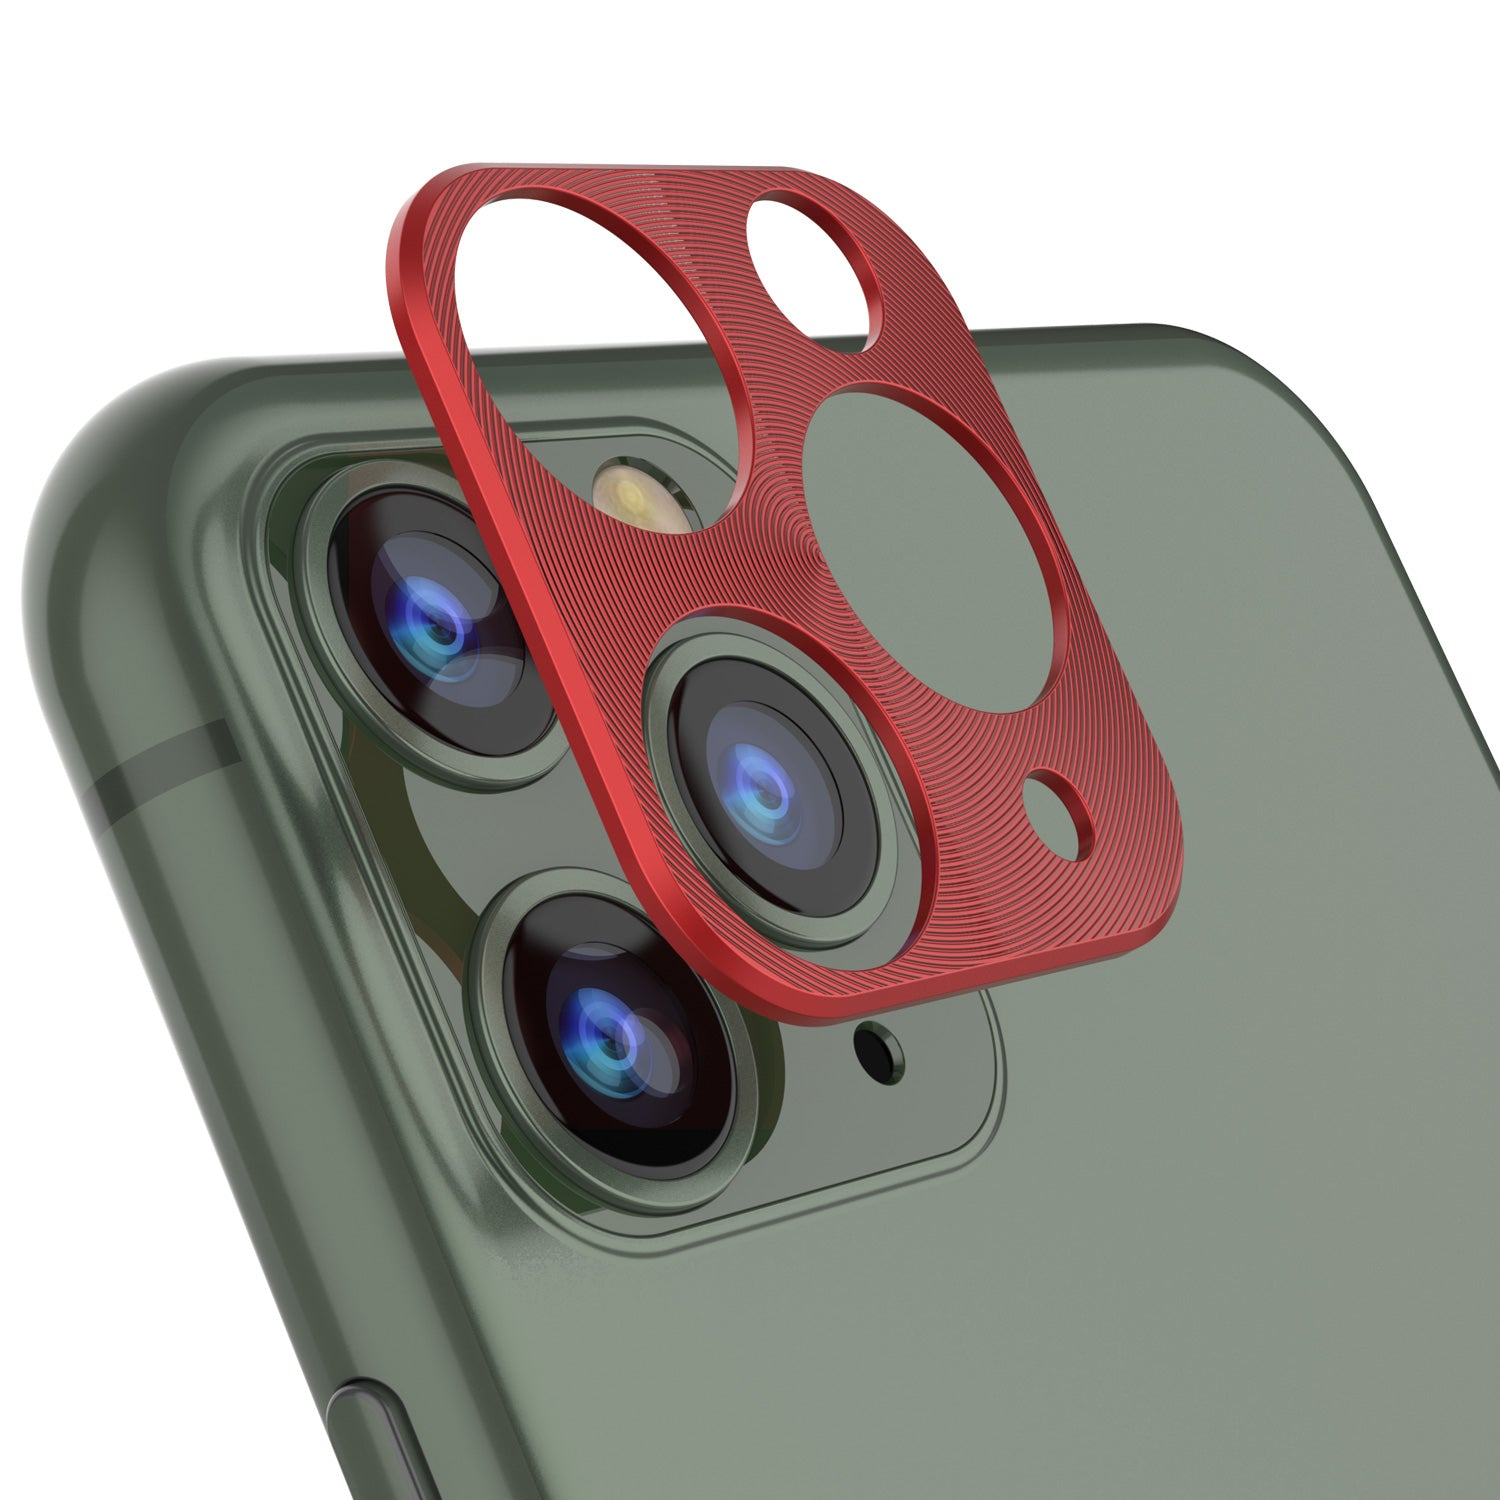 Punkcase iPhone 11 Pro Max Camera Protector Ring [Red]